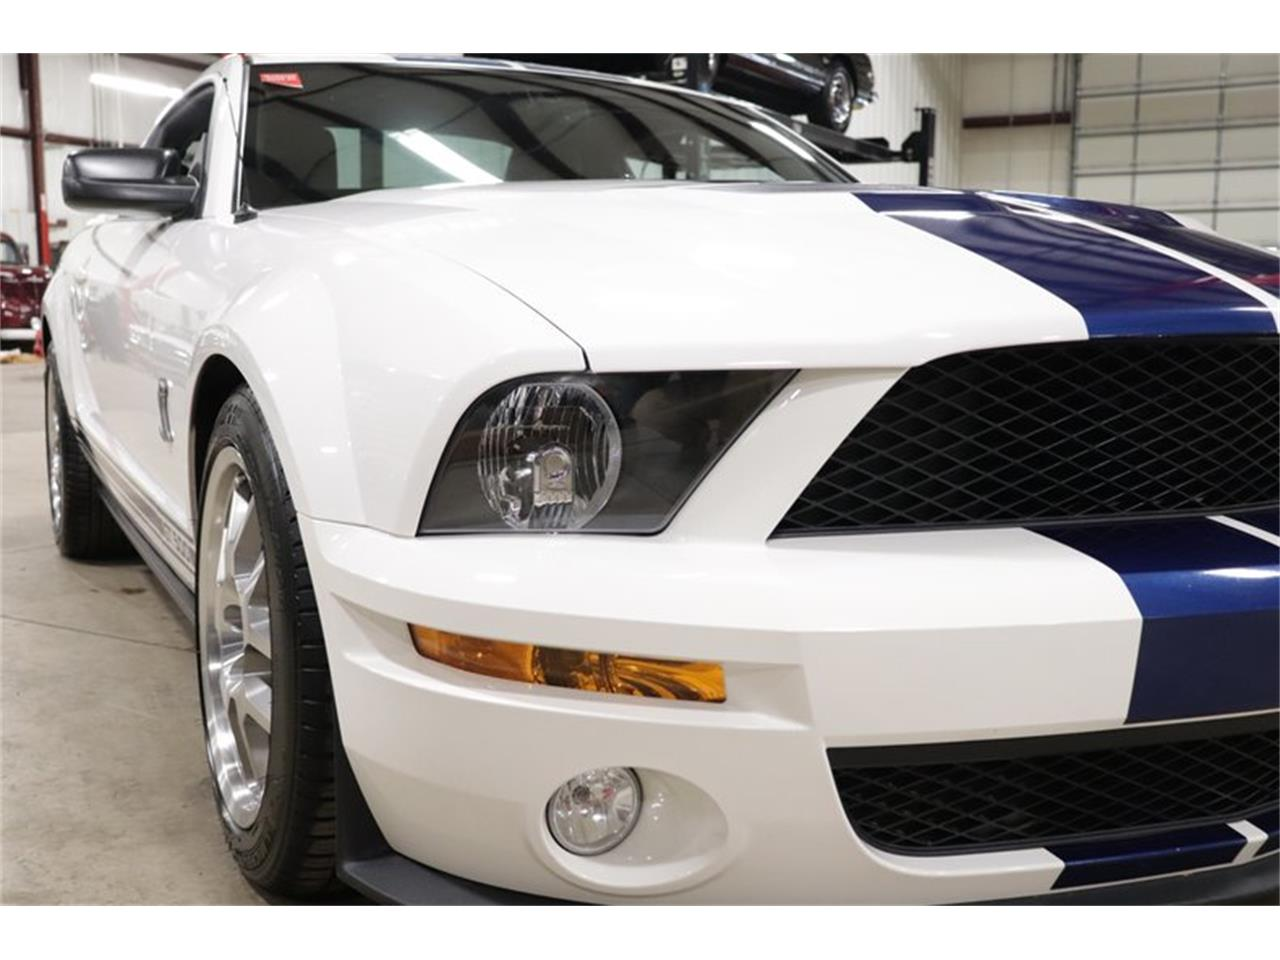 2008 Shelby GT500 for sale in Kentwood, MI – photo 54